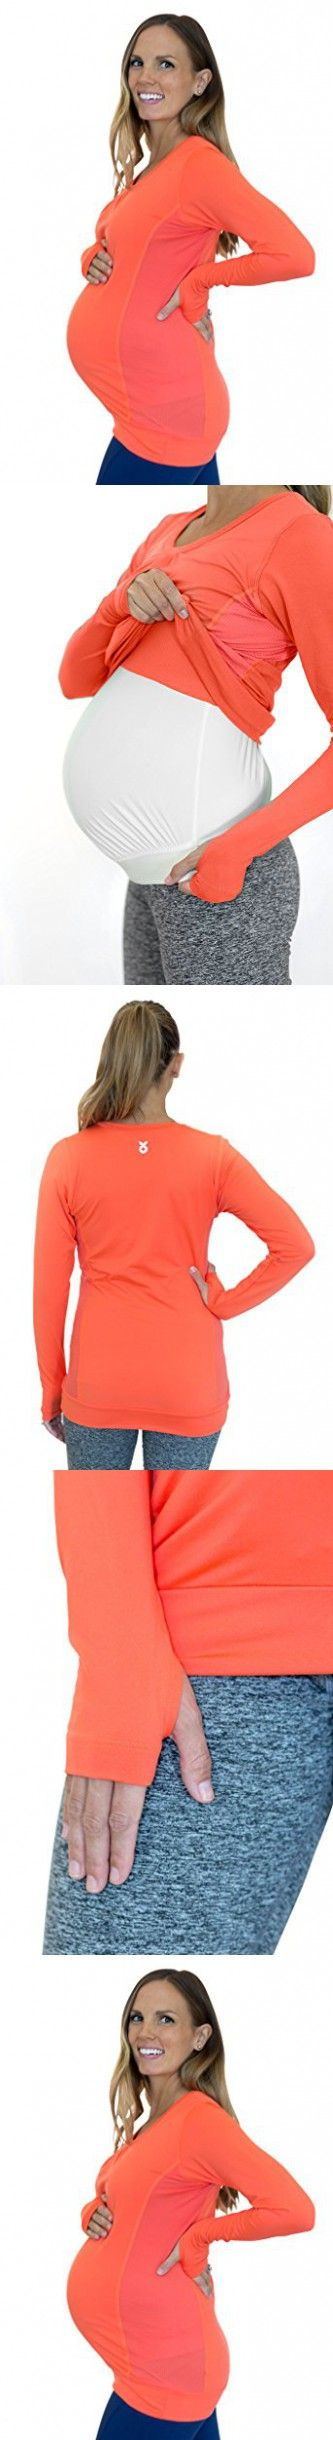 Mumberry Maternity Activewear Dynamic Long Sleeve Shirt with Belly Band Support